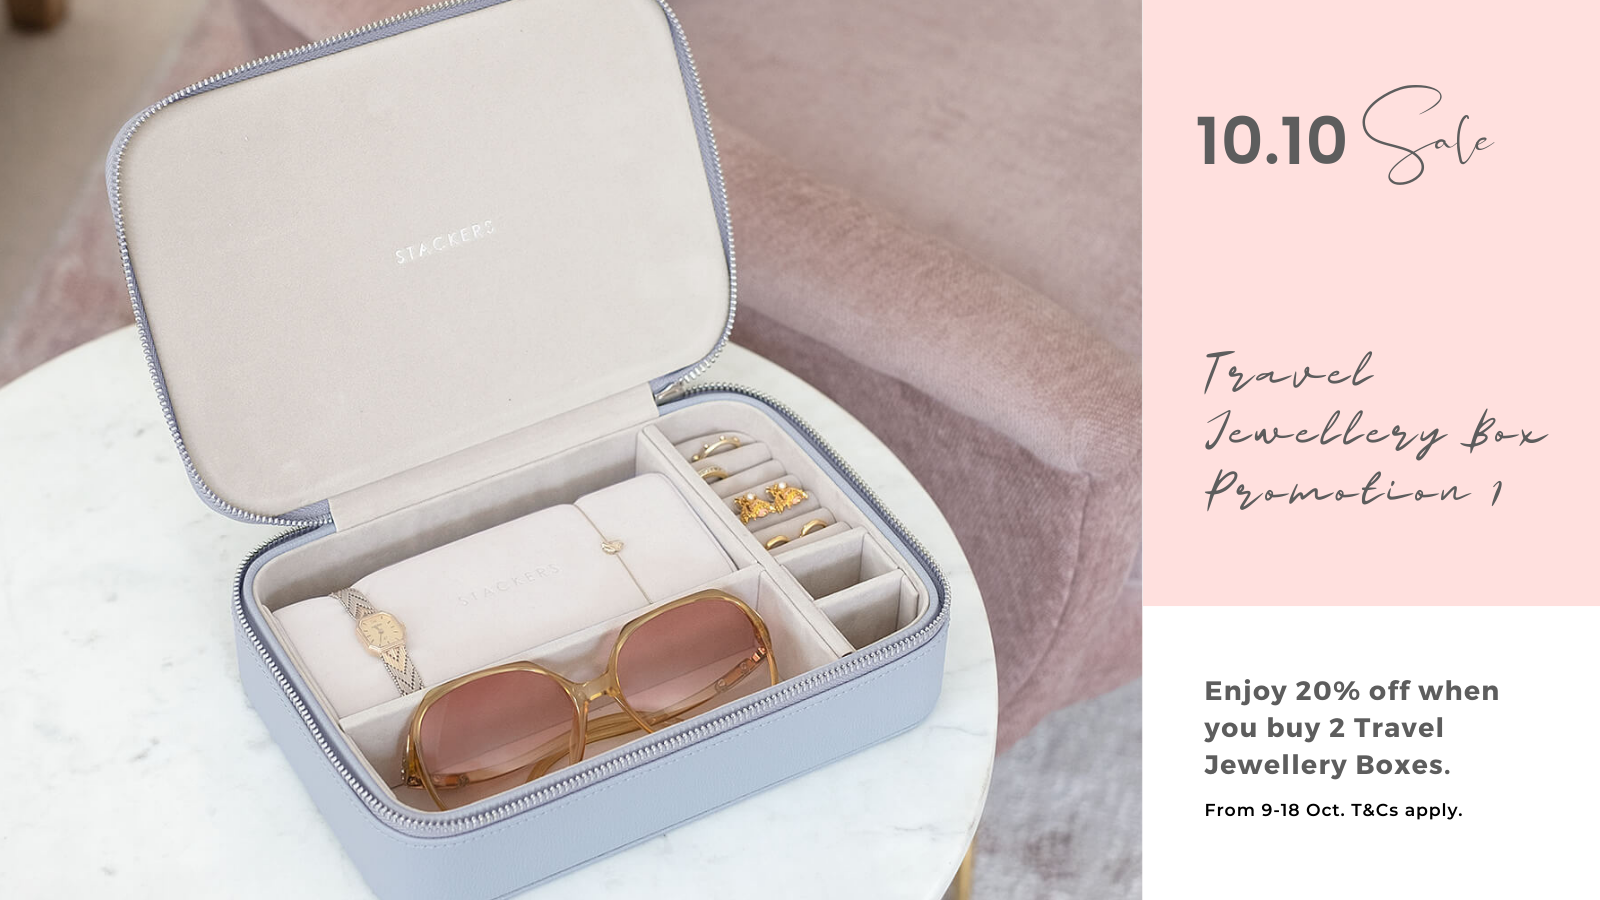 Stackers 10.10 Sale Travel Jewellery Box Promotion 1